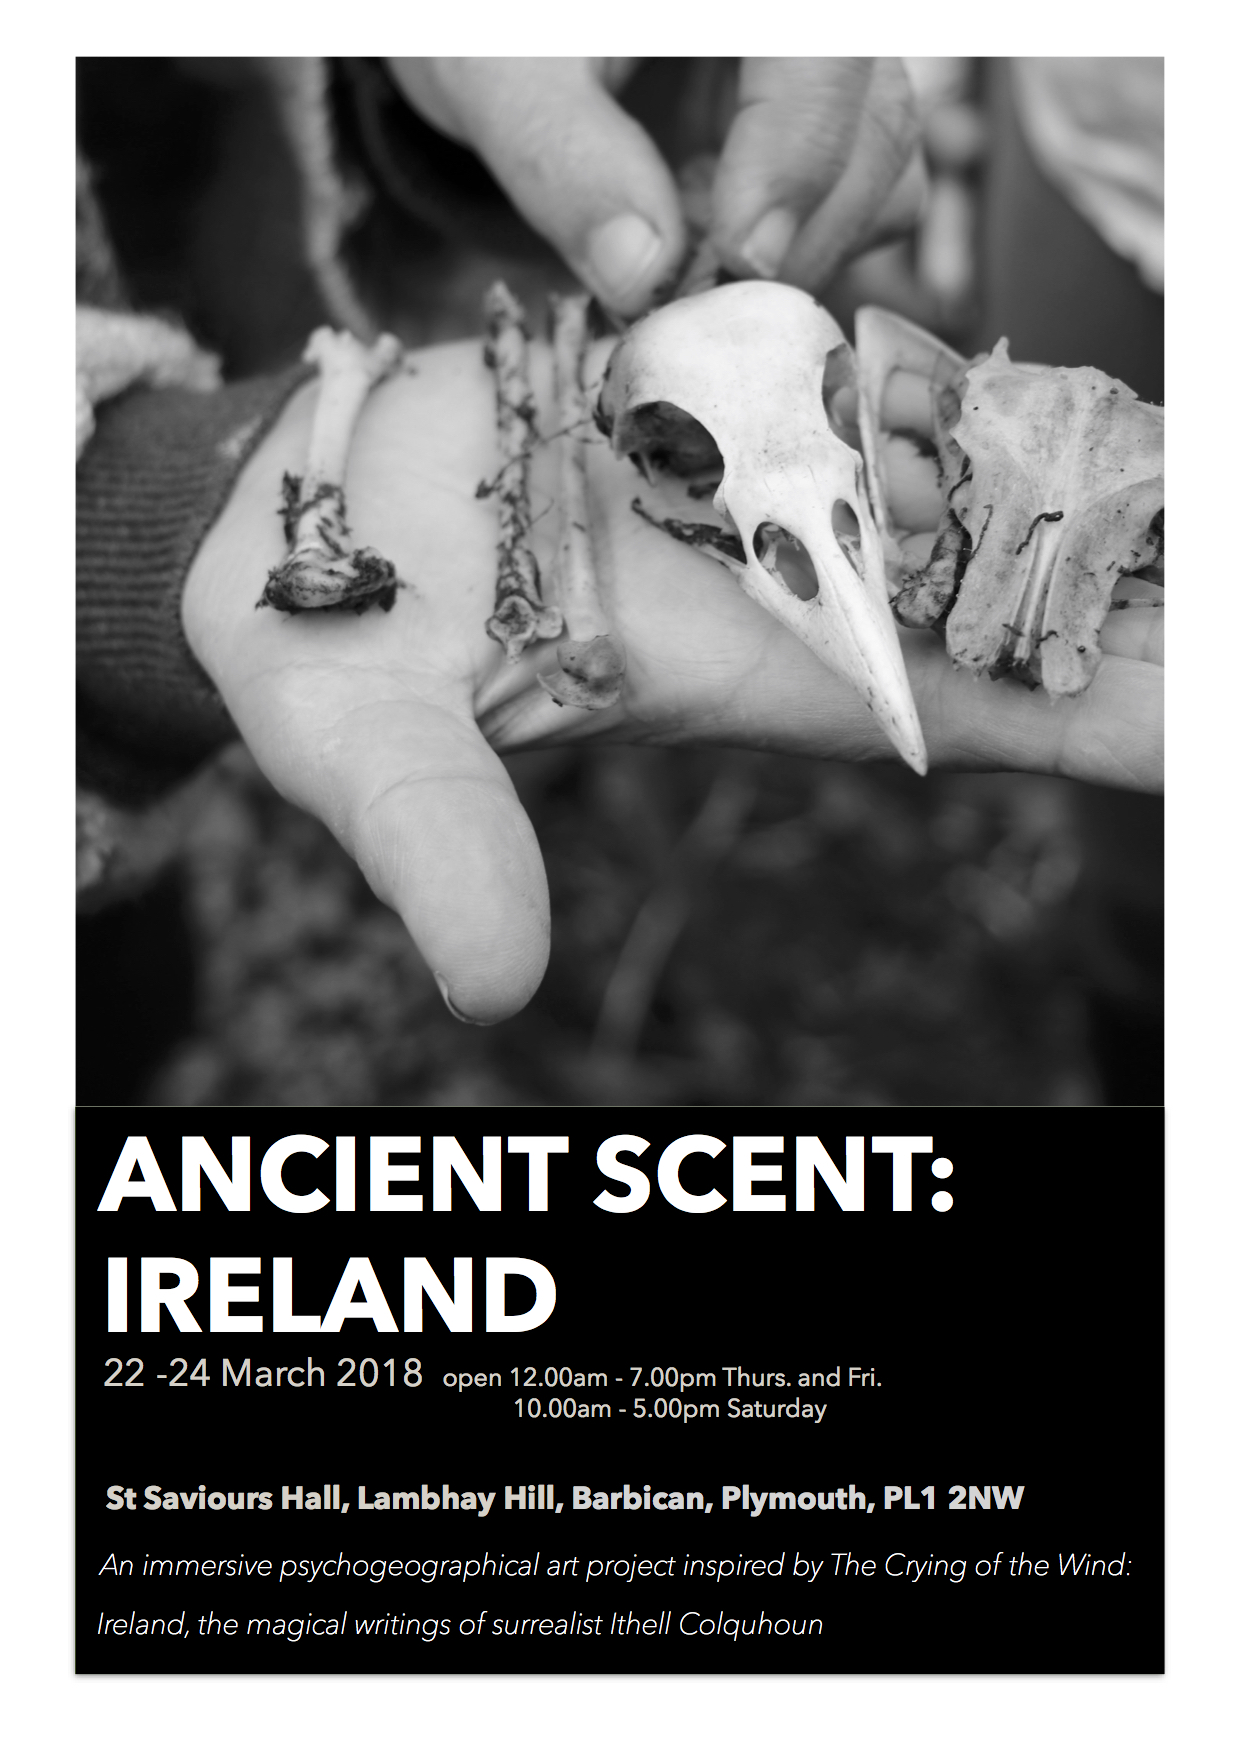 Ancient Scent: Ireland exhibition and opening